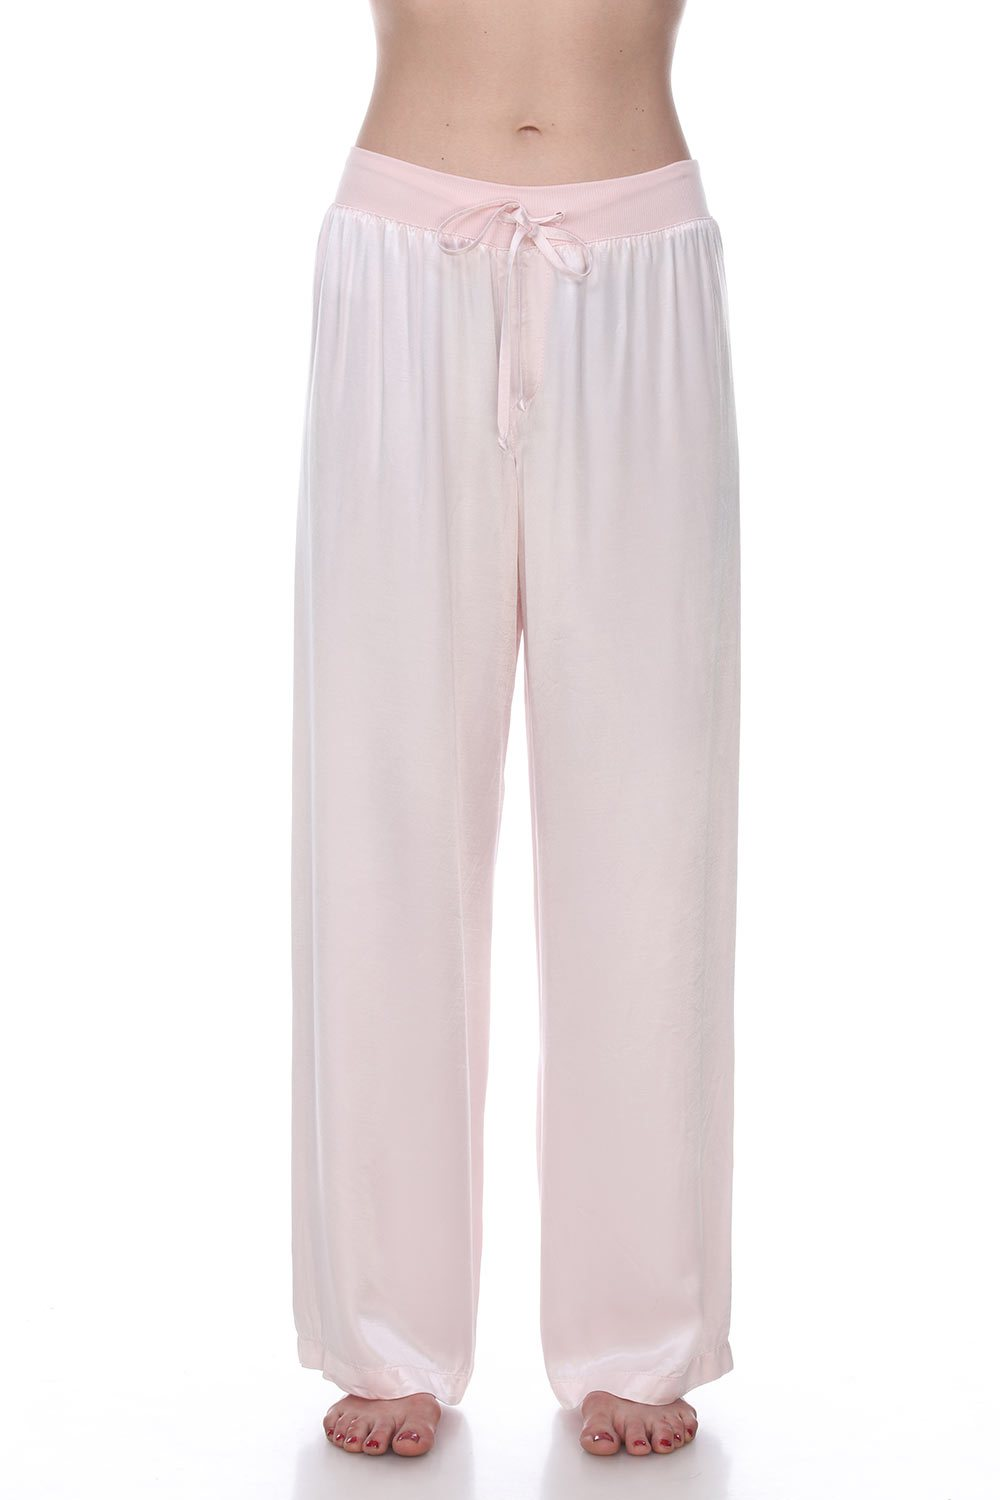 PJ Satin Pant With Rib Waistband And Adjustable Drawstring in Pink